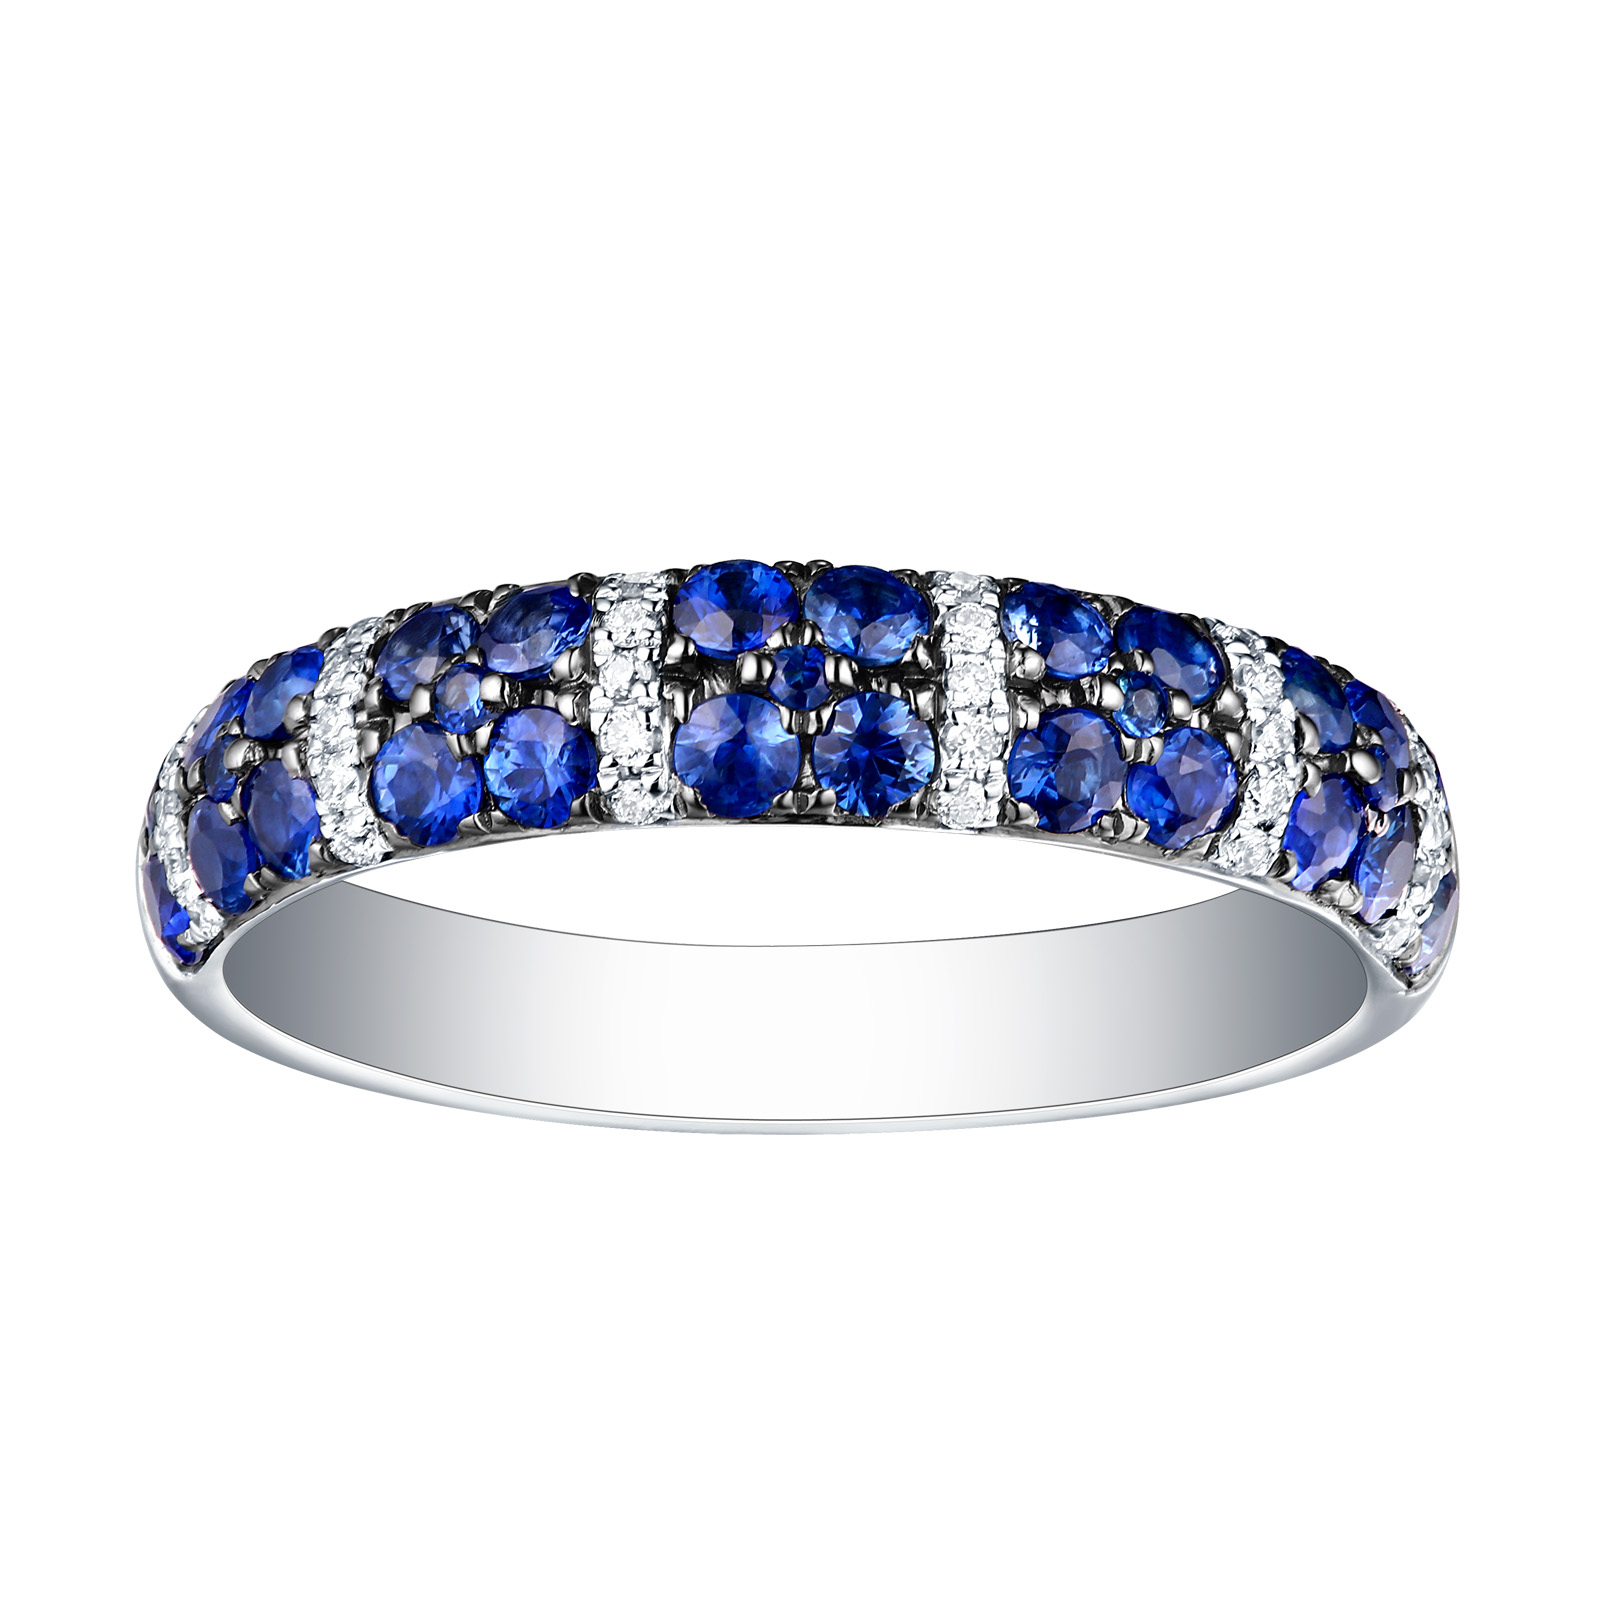 R22832BSA – 14K White Gold Blue Sapphire and Diamond Ring, 0.98 TCW